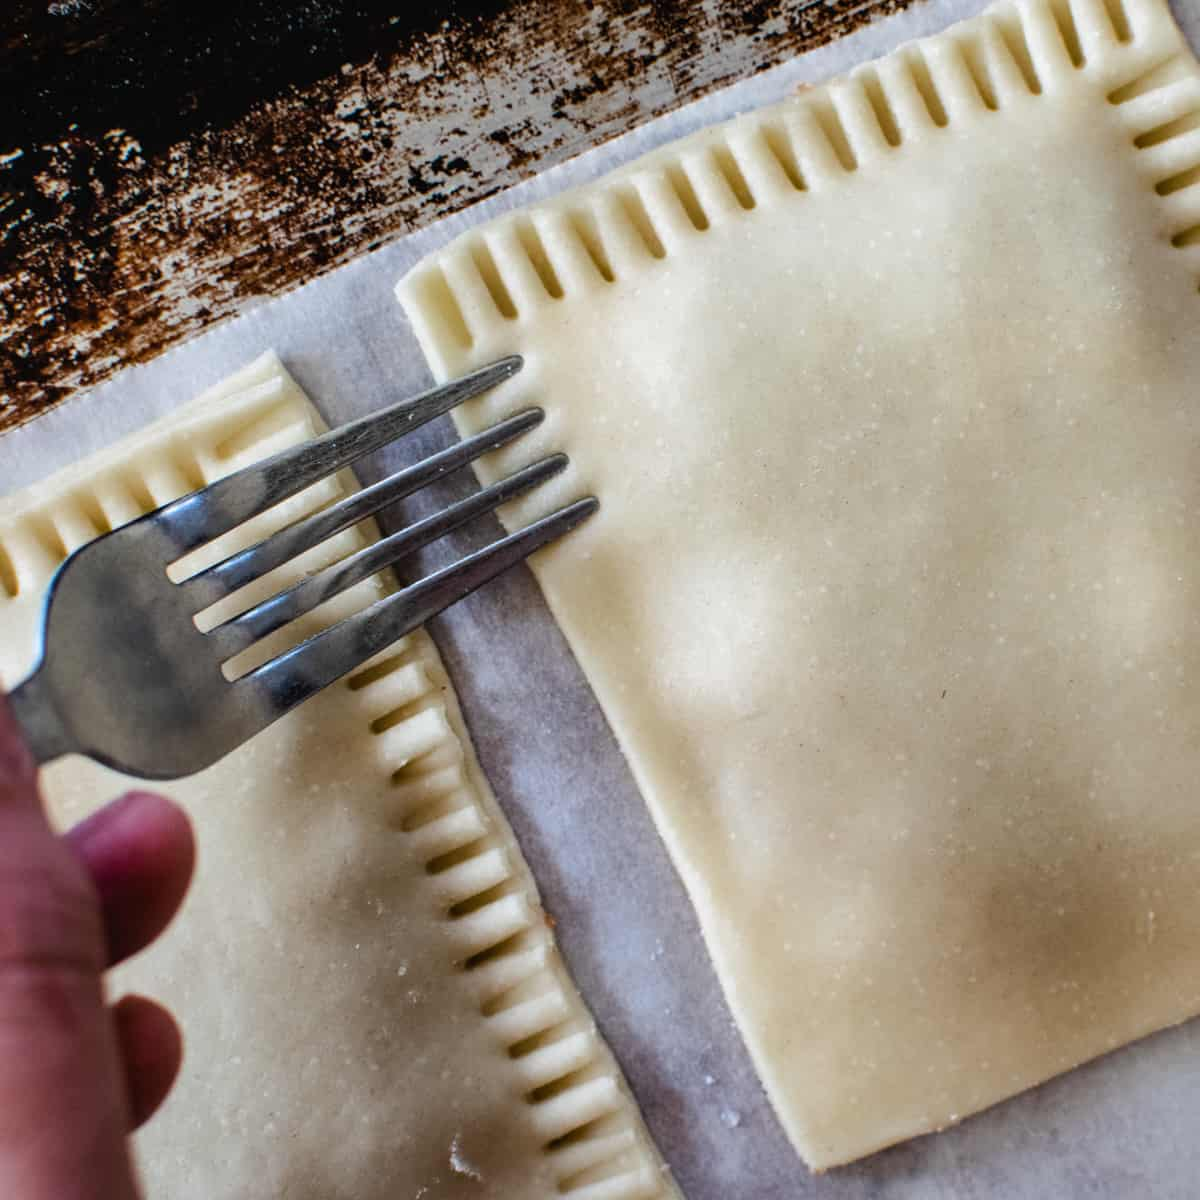 Homemade pop tarts being pressed with the tines of a fork to seal.